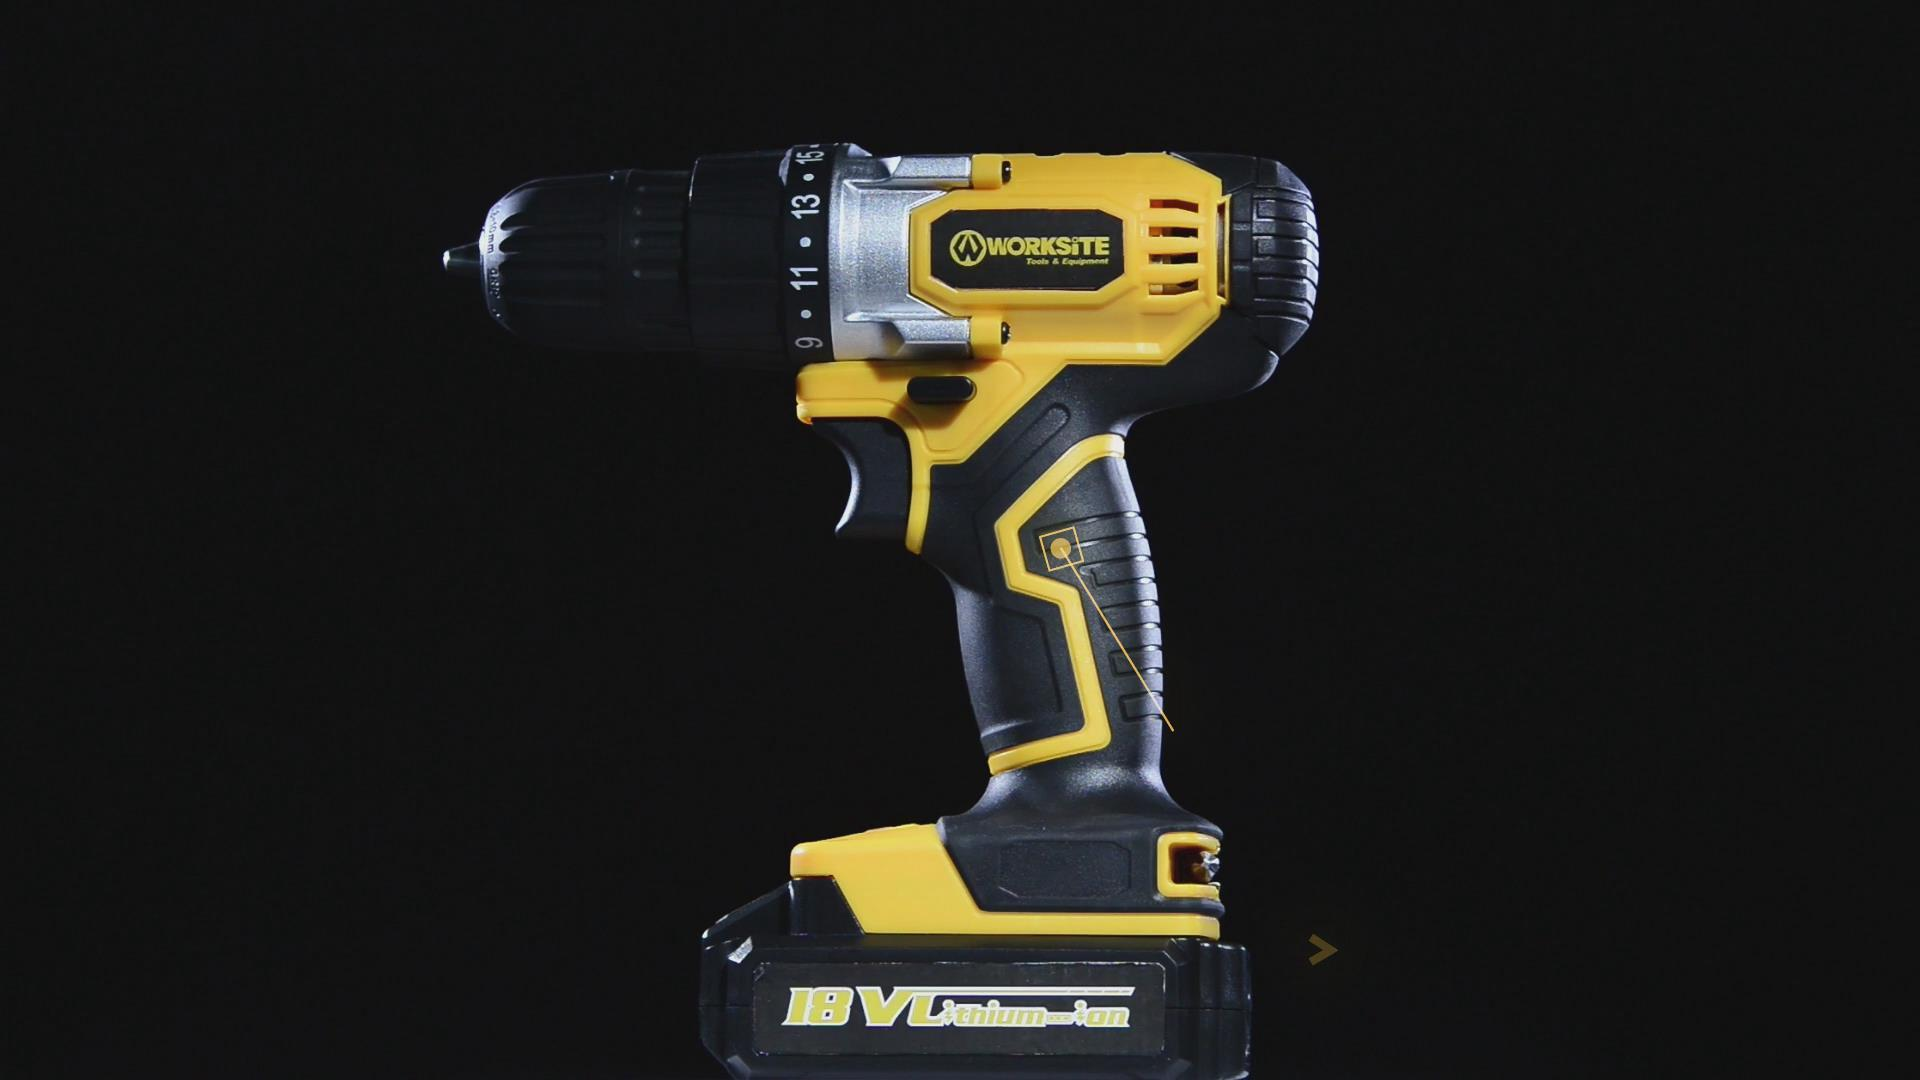 Worksite Cordless Drill, 20V Max, CD317